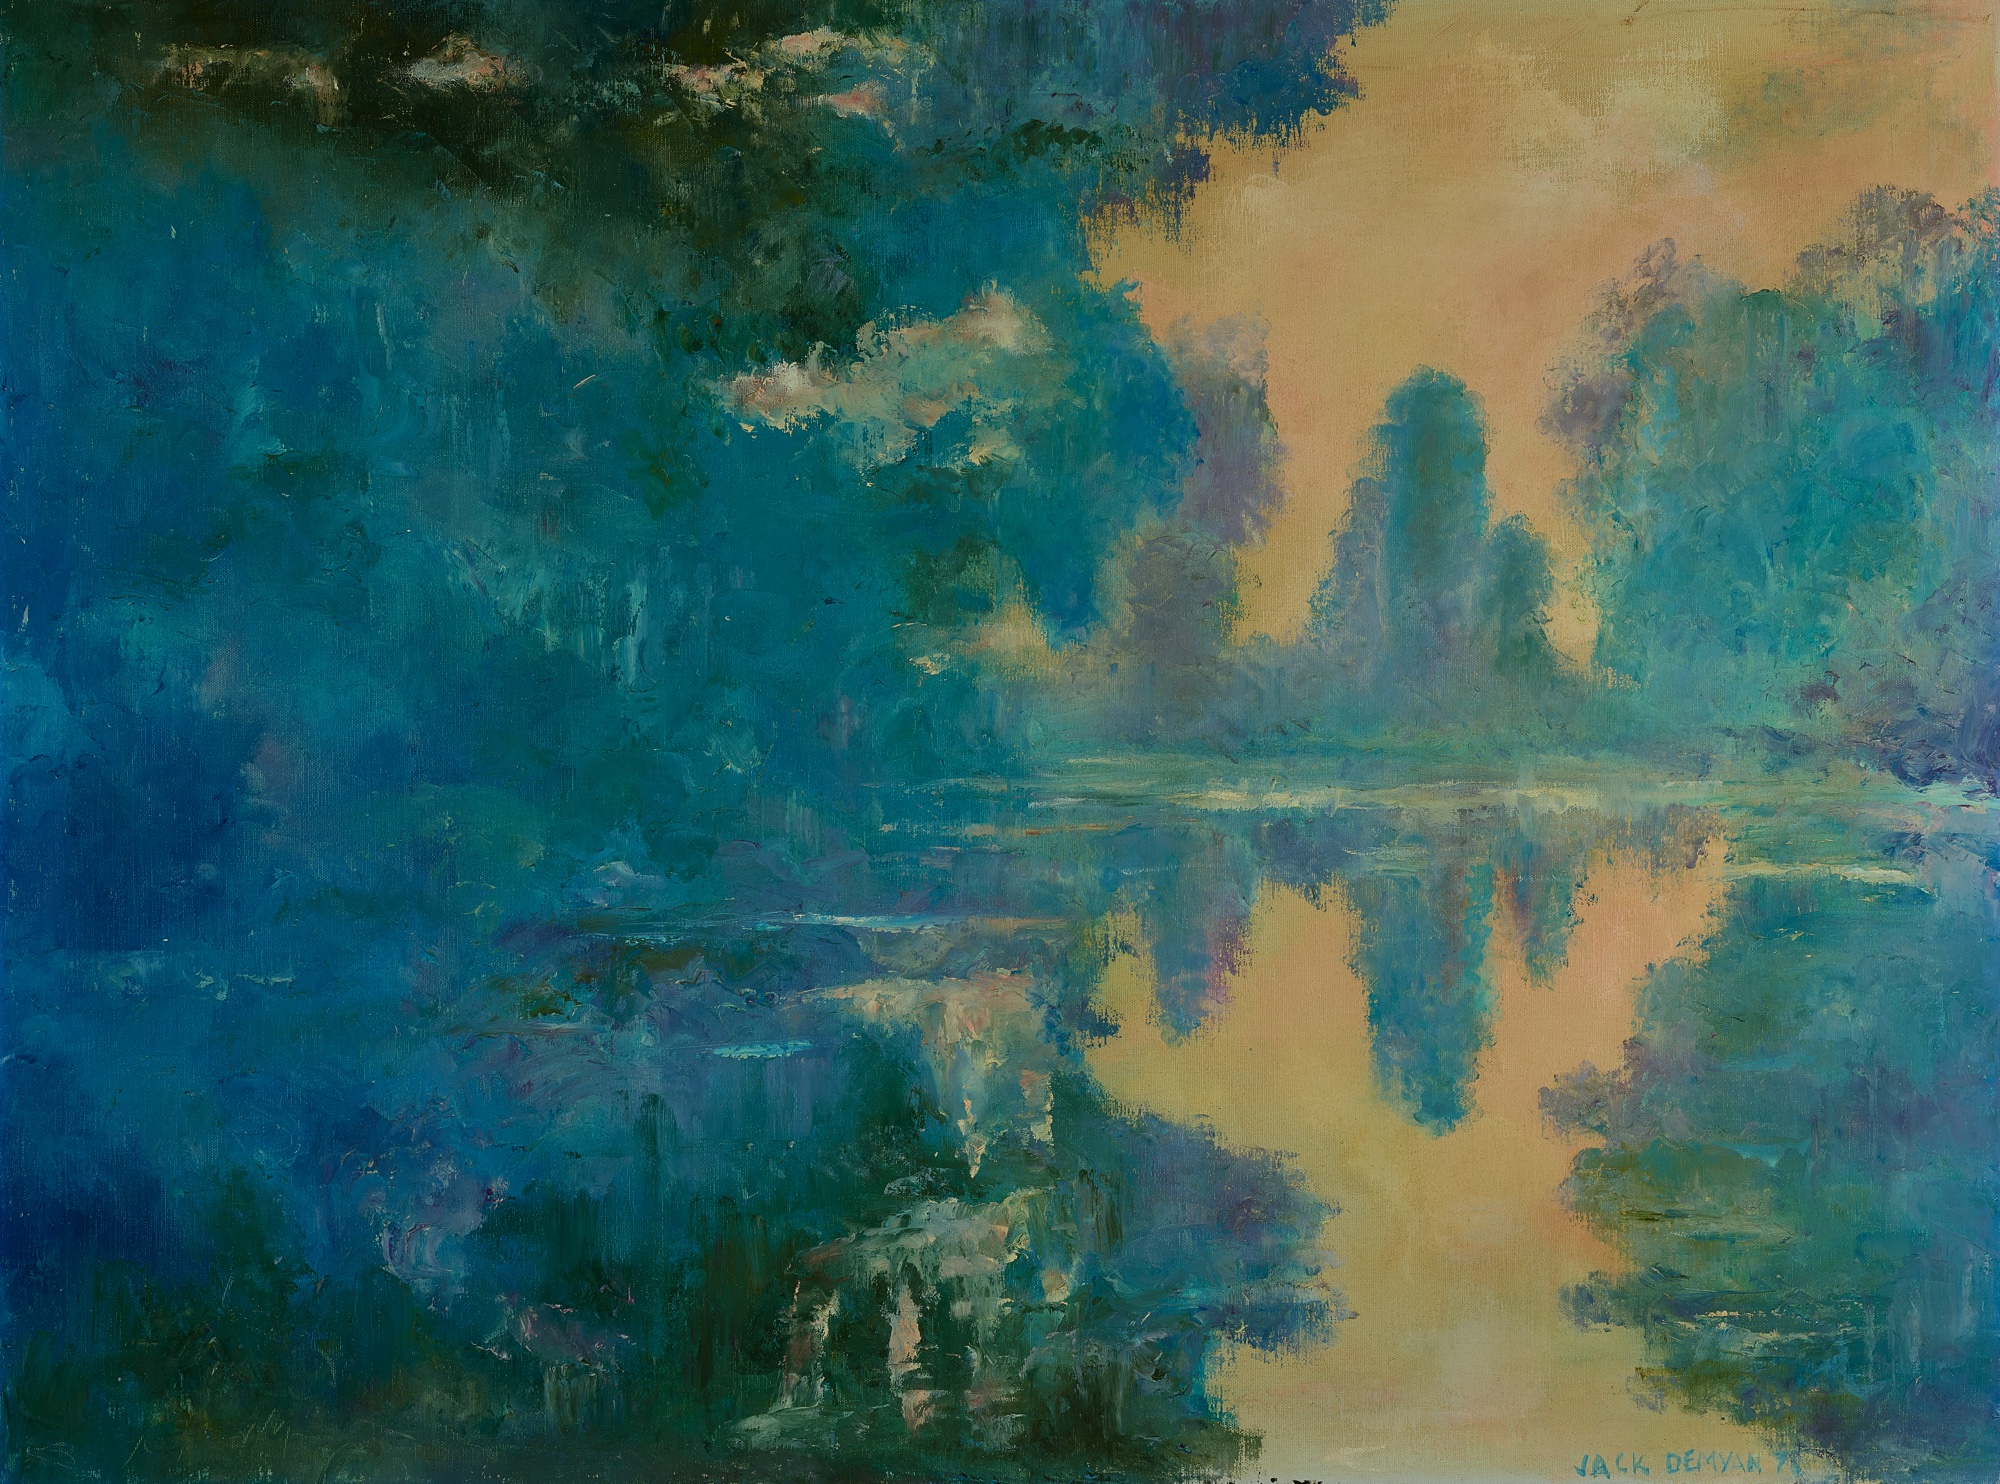 22. Jack Demyan (1923-99), Untitled (landscape in the style of Monet)